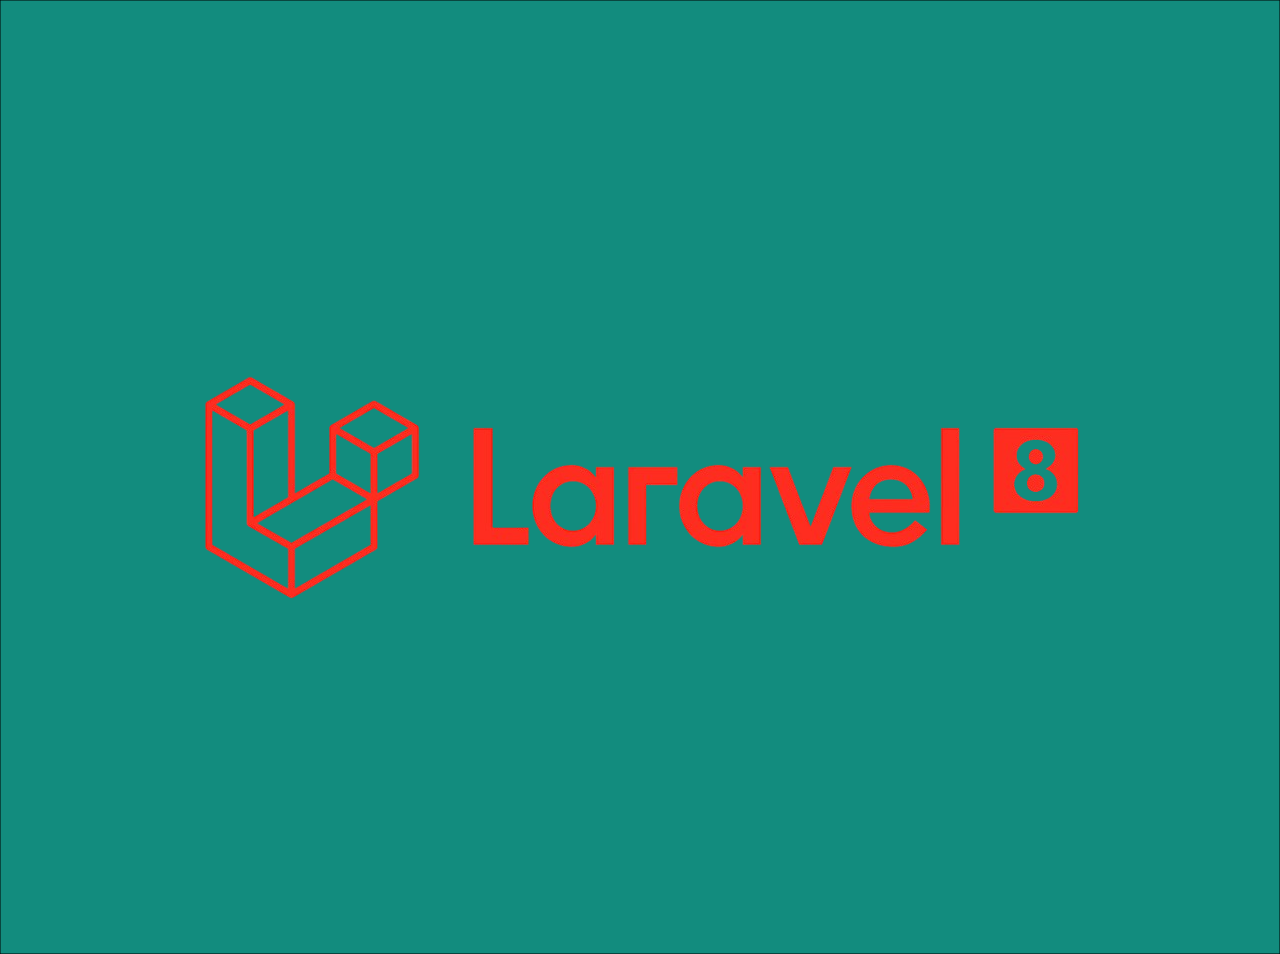 What is new in Laravel 8